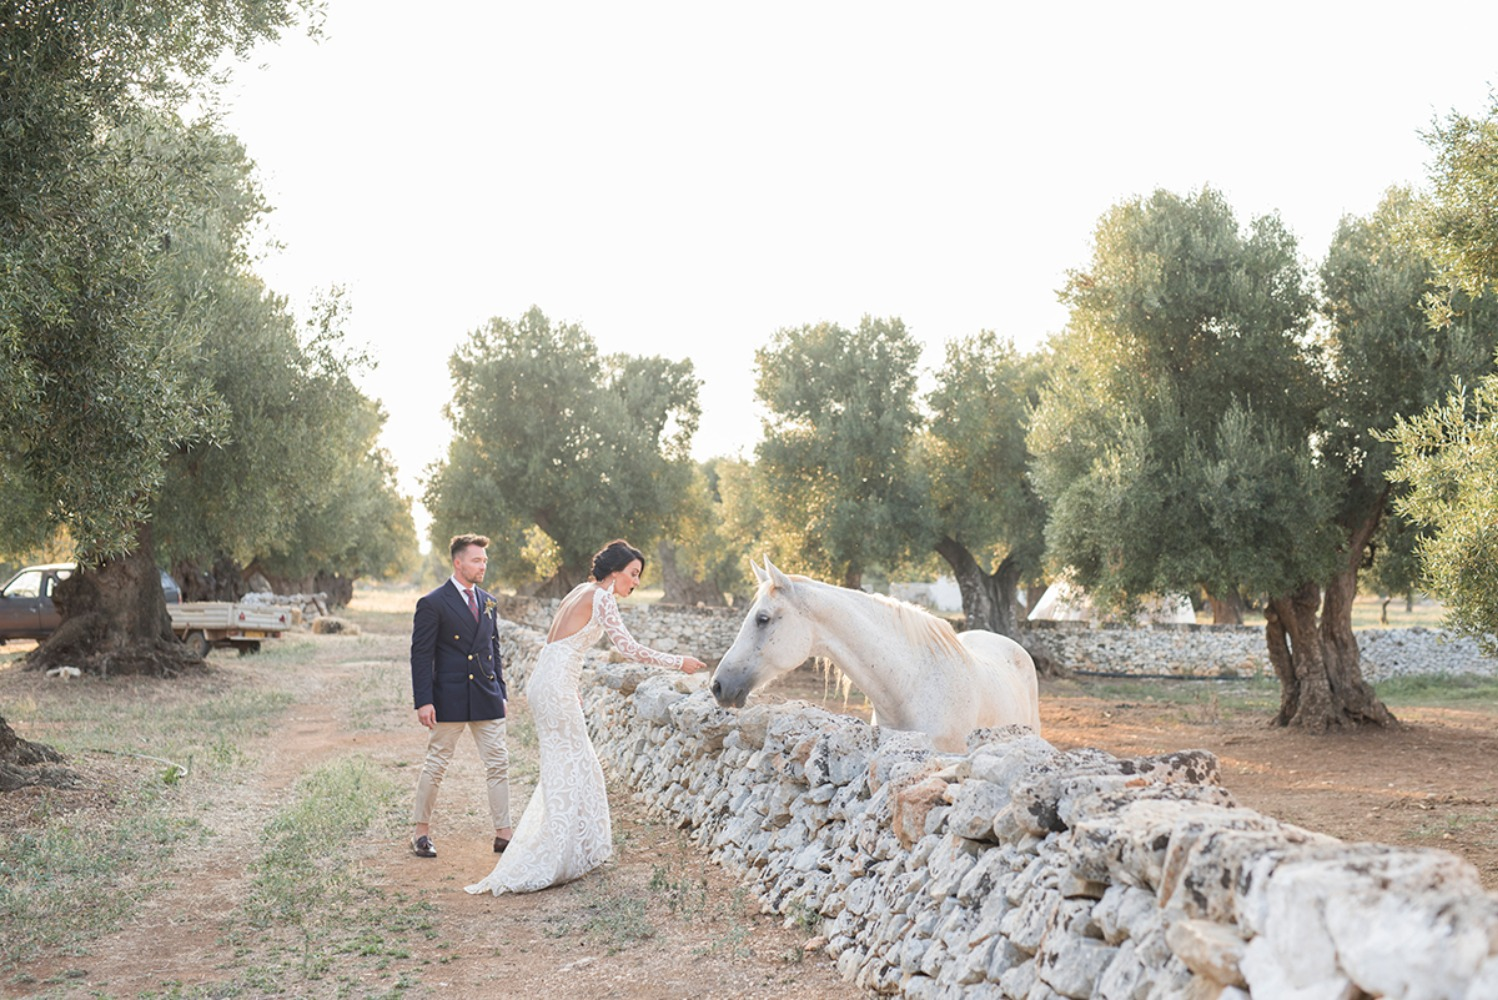 sweet candid wedding couple and horse